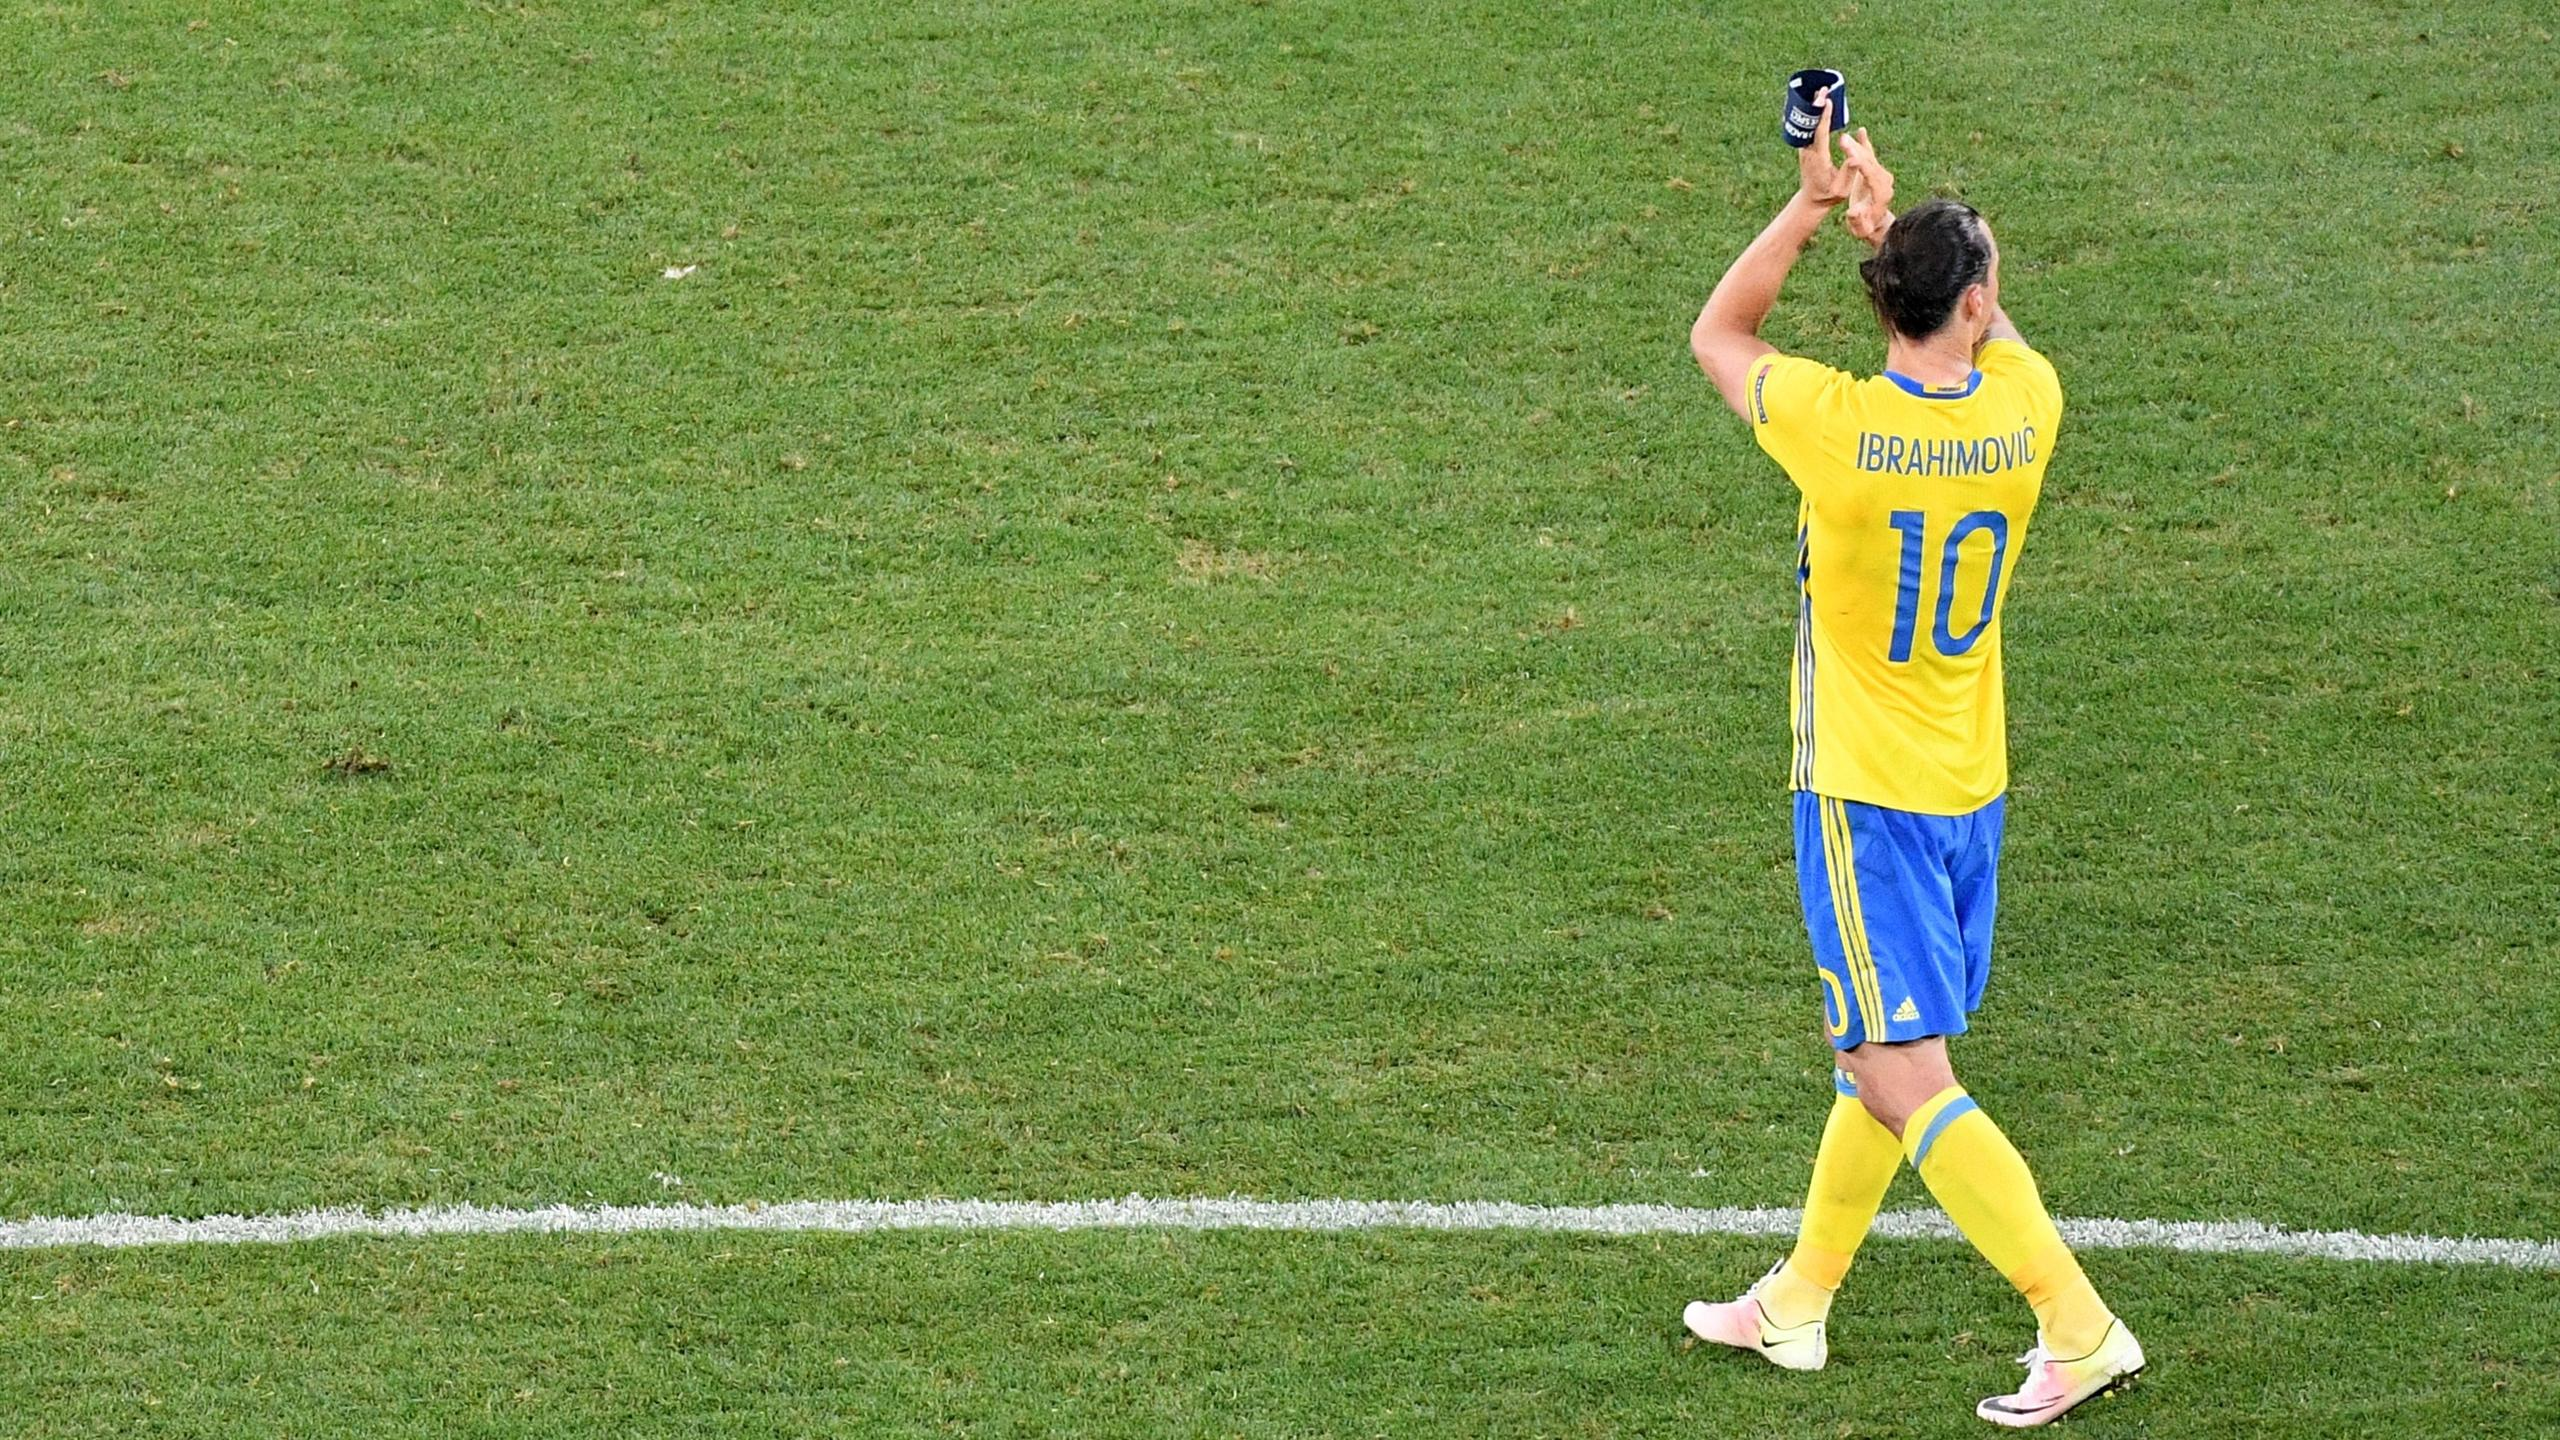 Sweden's forward Zlatan Ibrahimovic acknowledges the crowd after Sweden lost 0-1 in the Euro 2016 group E football match between Sweden and Belgium